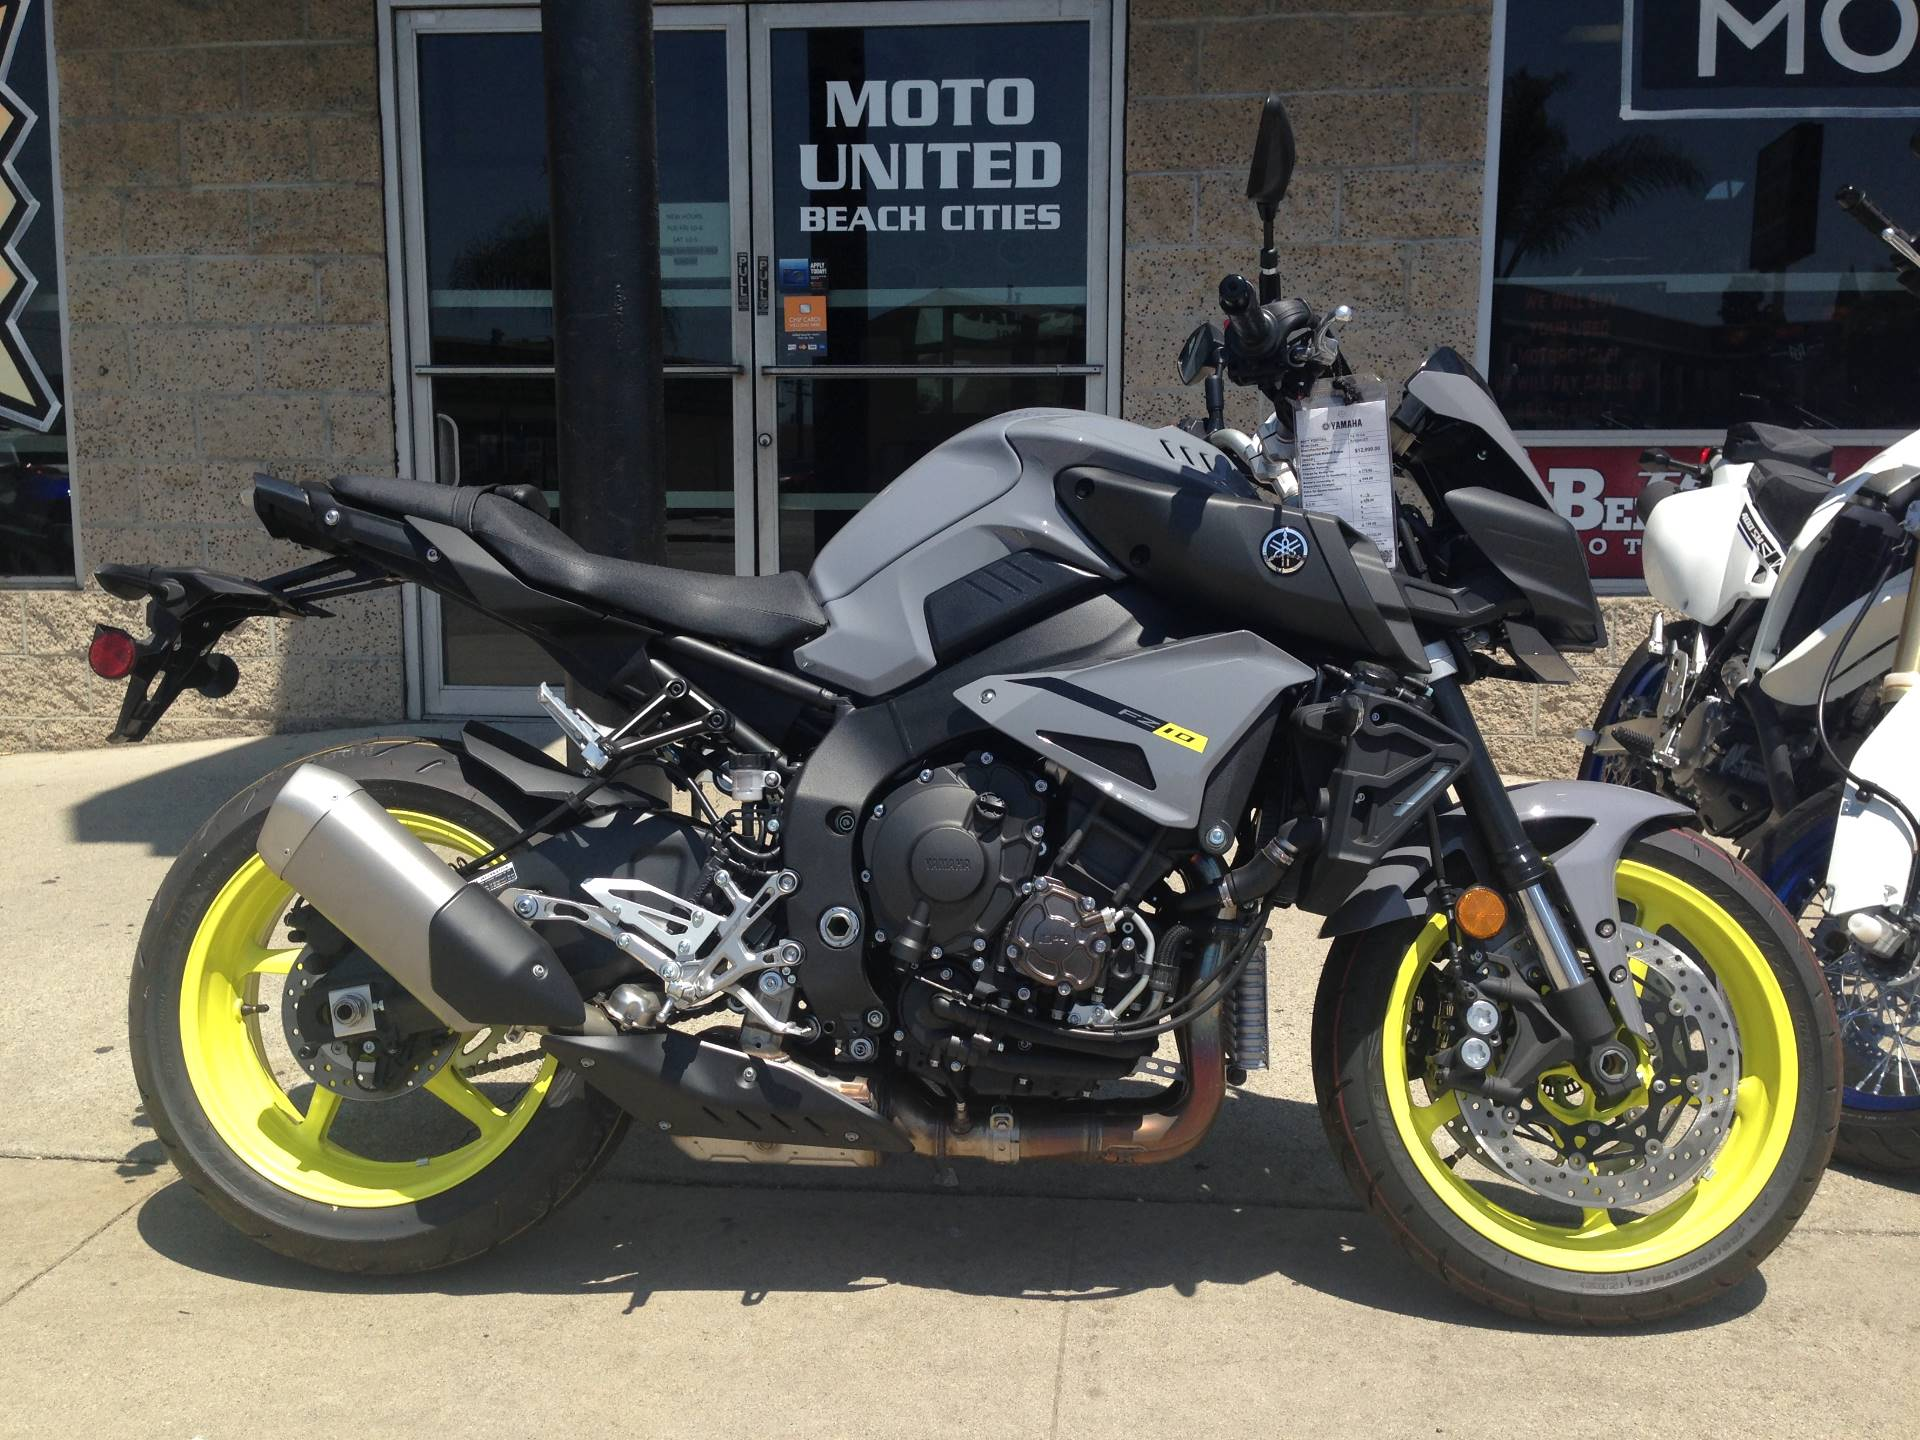 2017 Yamaha FZ-10 for sale 22178